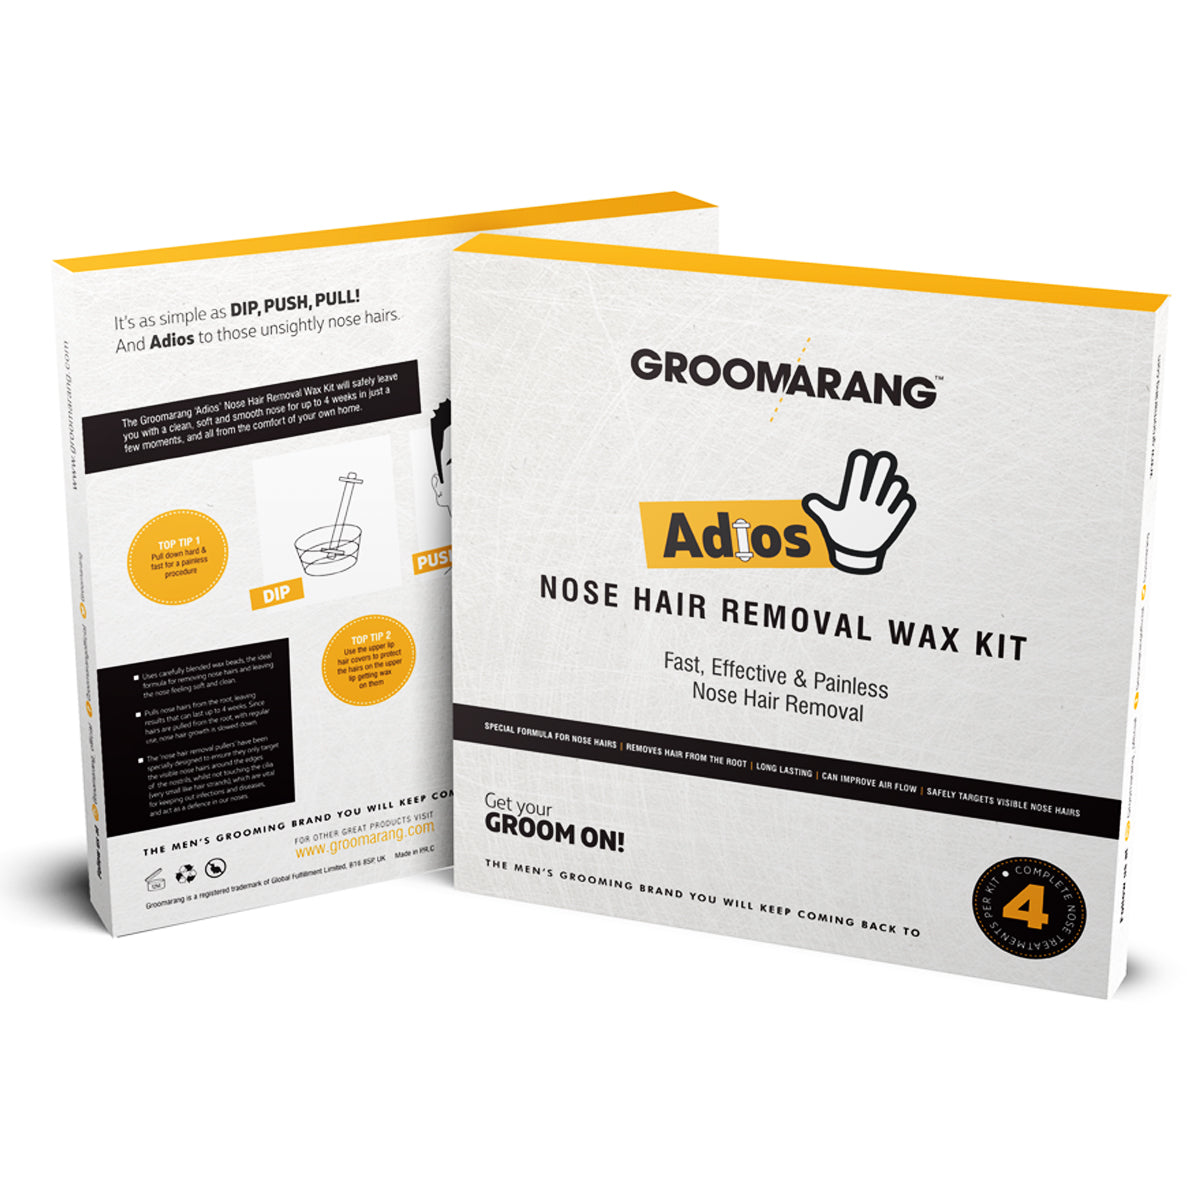 Groomarang Adios Nose Hair Removal Wax Kit by  Groomarang